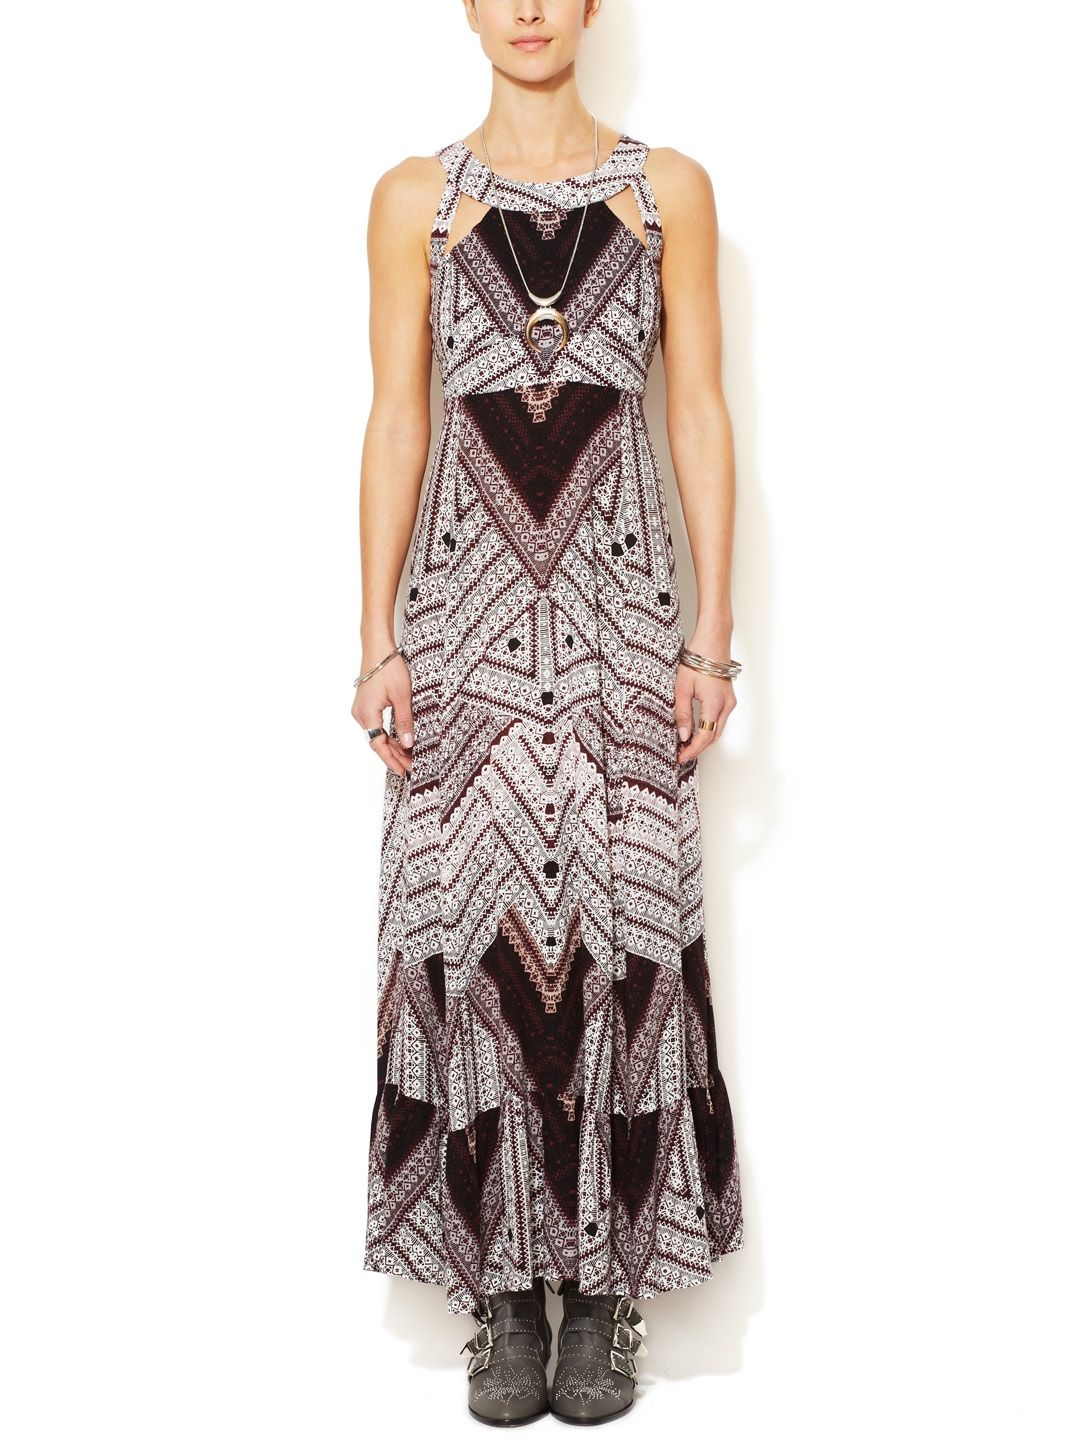 You Made My Day Printed Maxi Dress by Free People at Gilt $170, only $70 on gilt